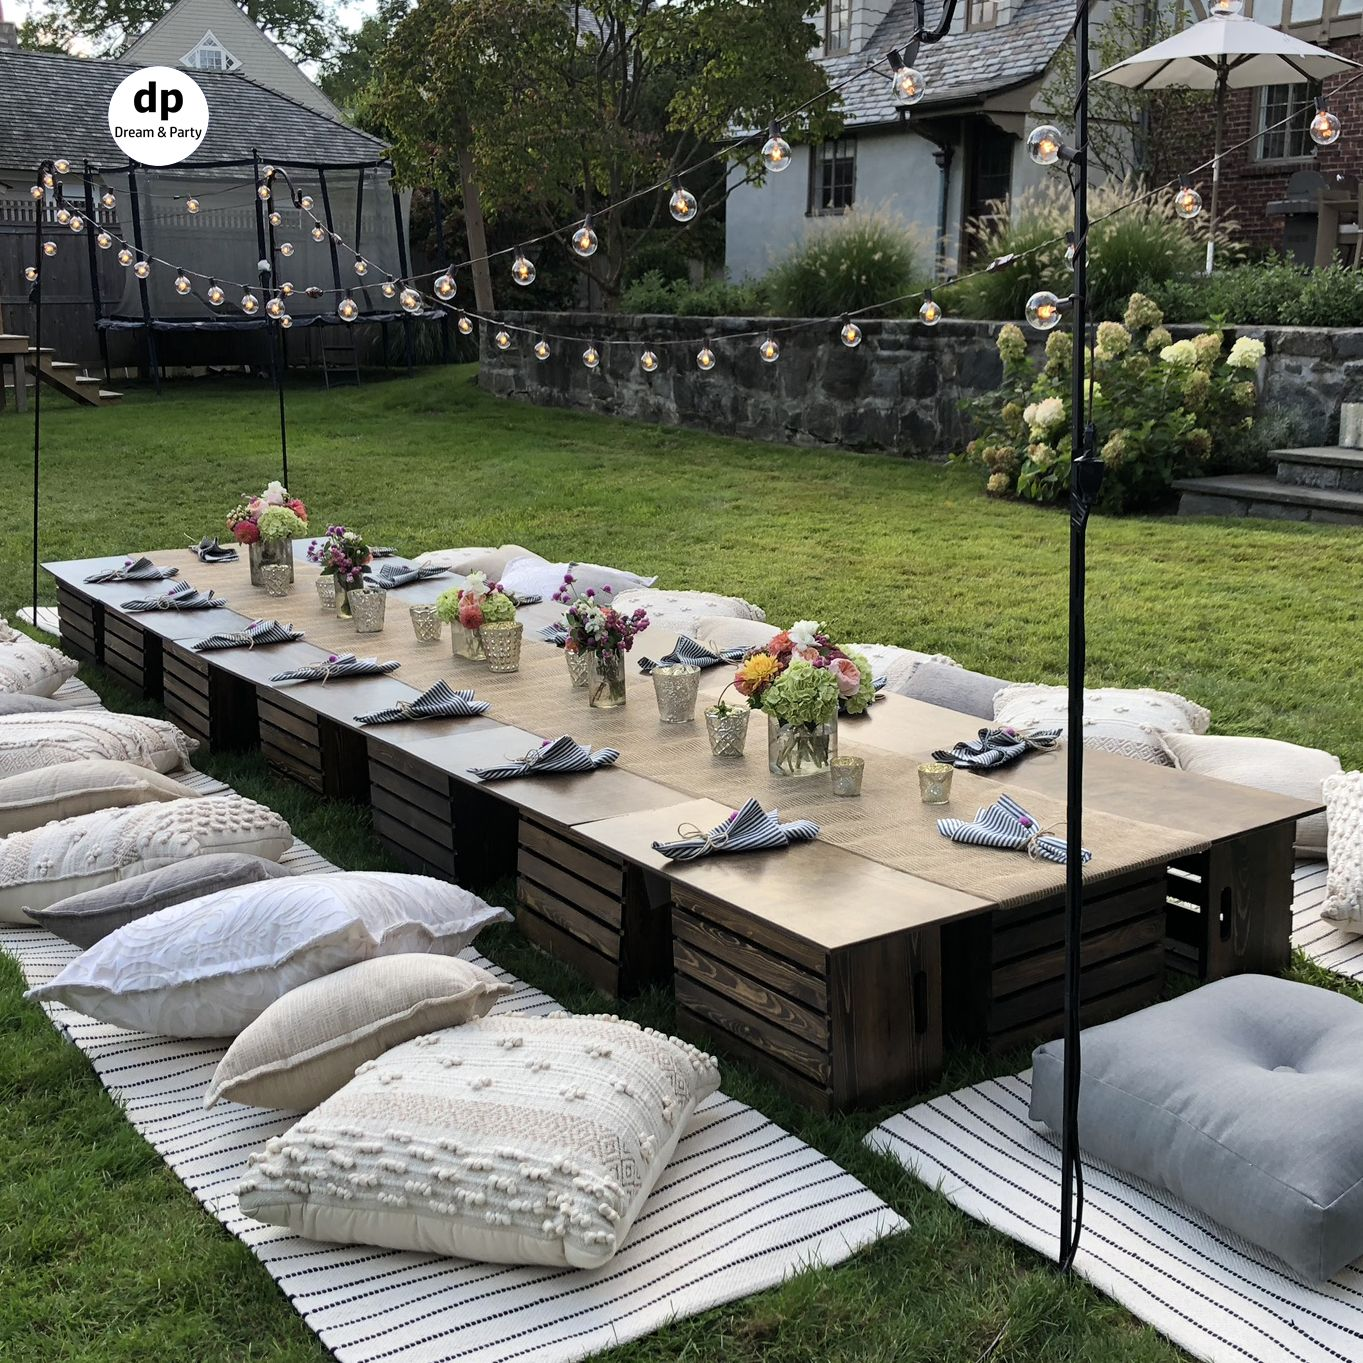 Backyard picnic party. Picnic table setting. Birthday party ideas